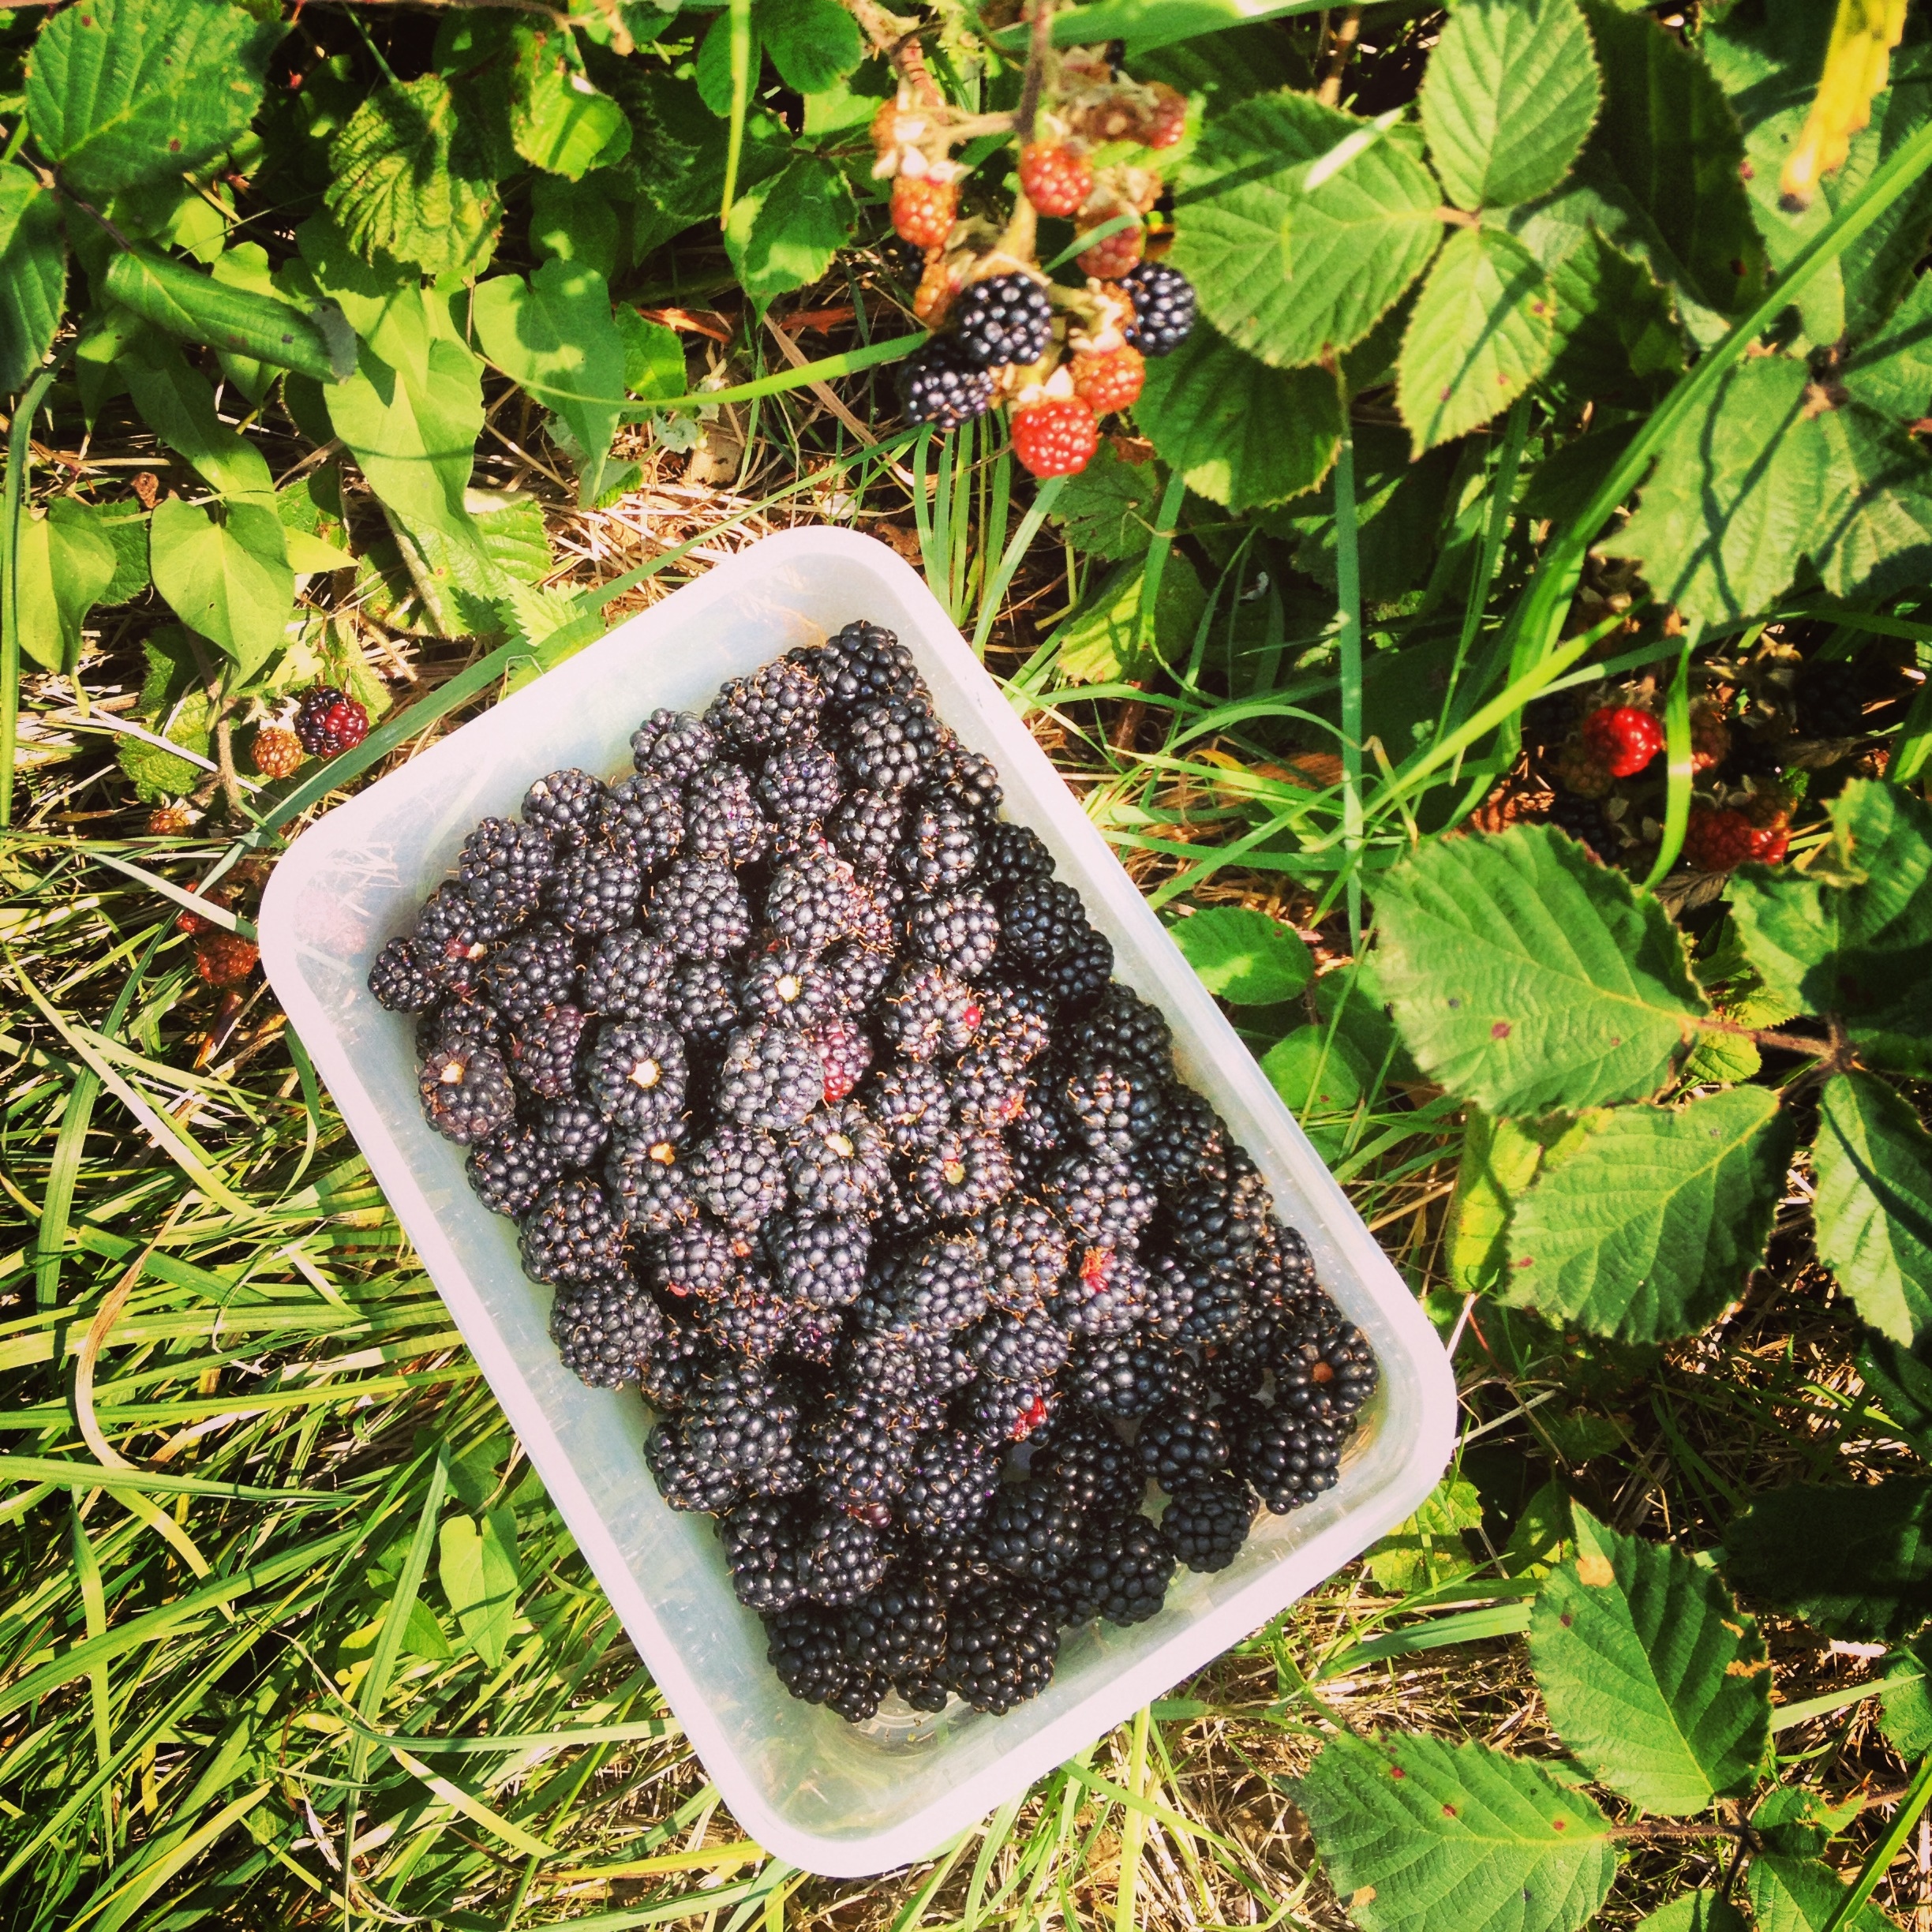 Fresh blackberries picked in the countryside near my house... thank goodness for Instagram to capture the loveliness!